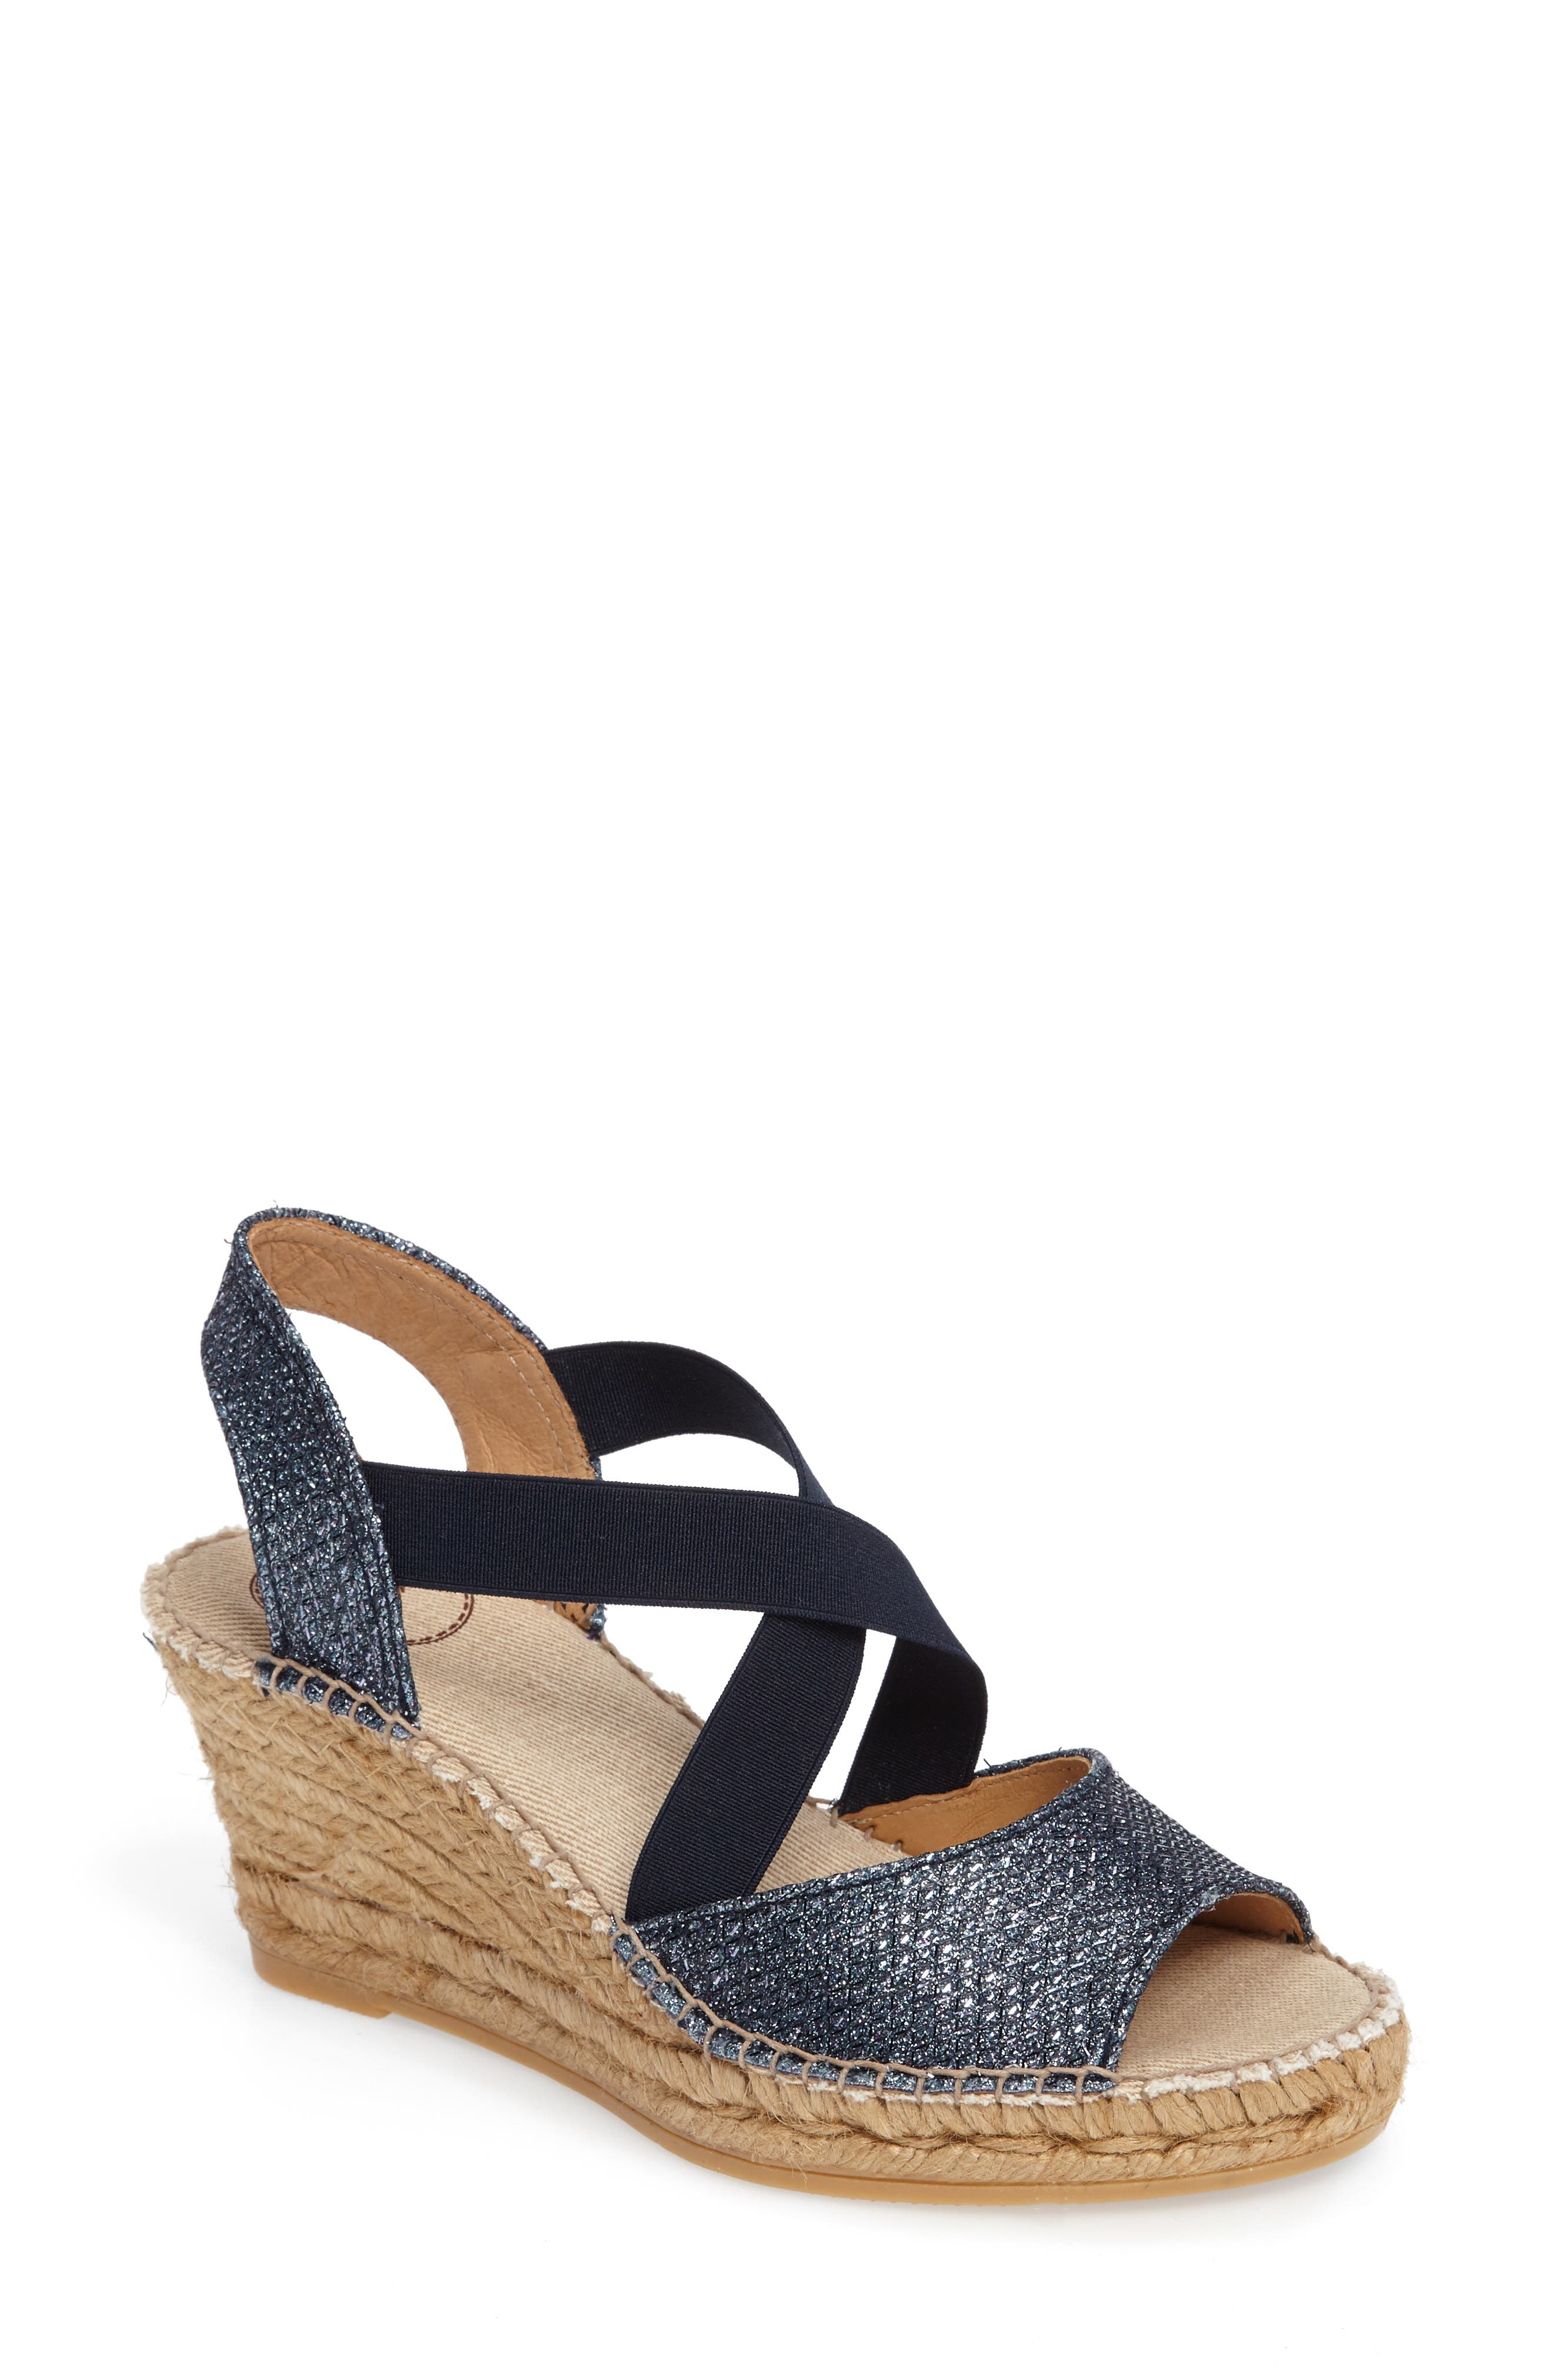 Sol Wedge Espadrille Sandal,                         Main,                         color, NAVY FABRIC